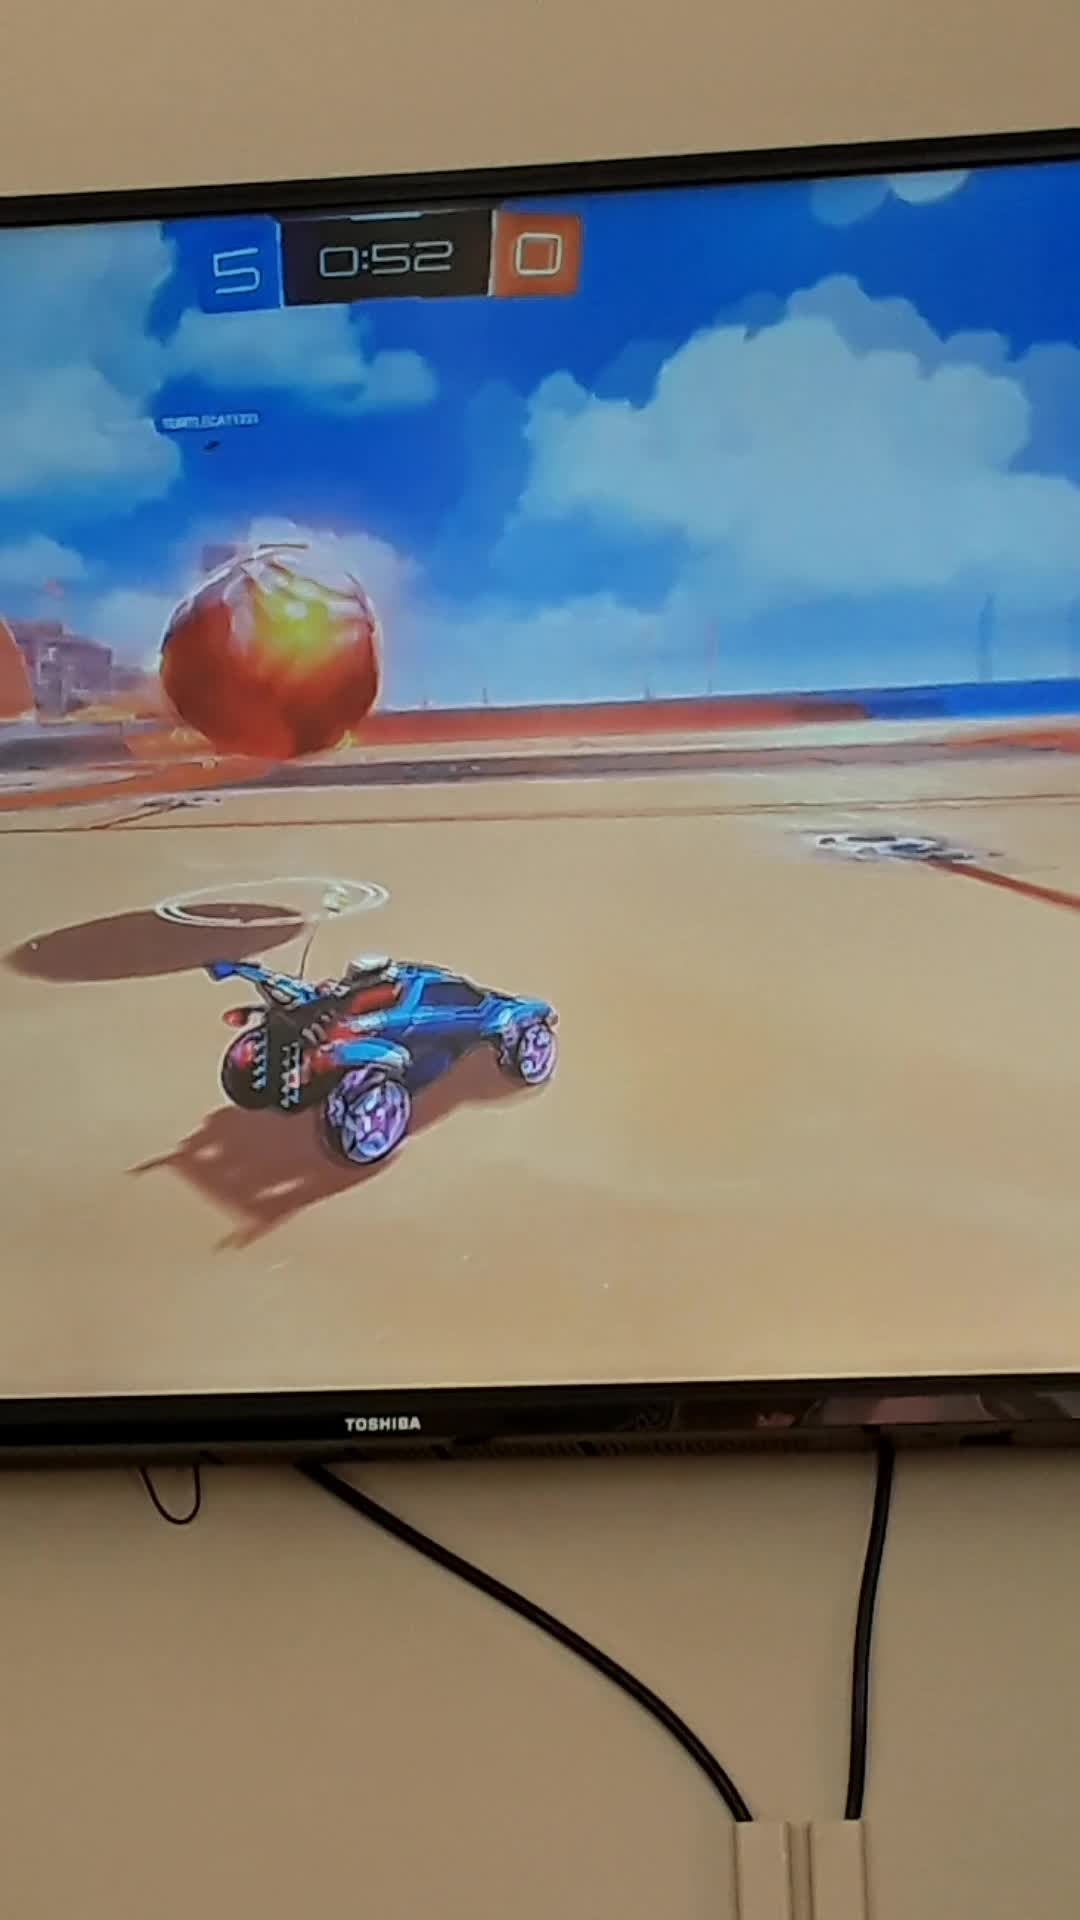 Rocket League: General - Has thishappend to anyone?  video cover image 0